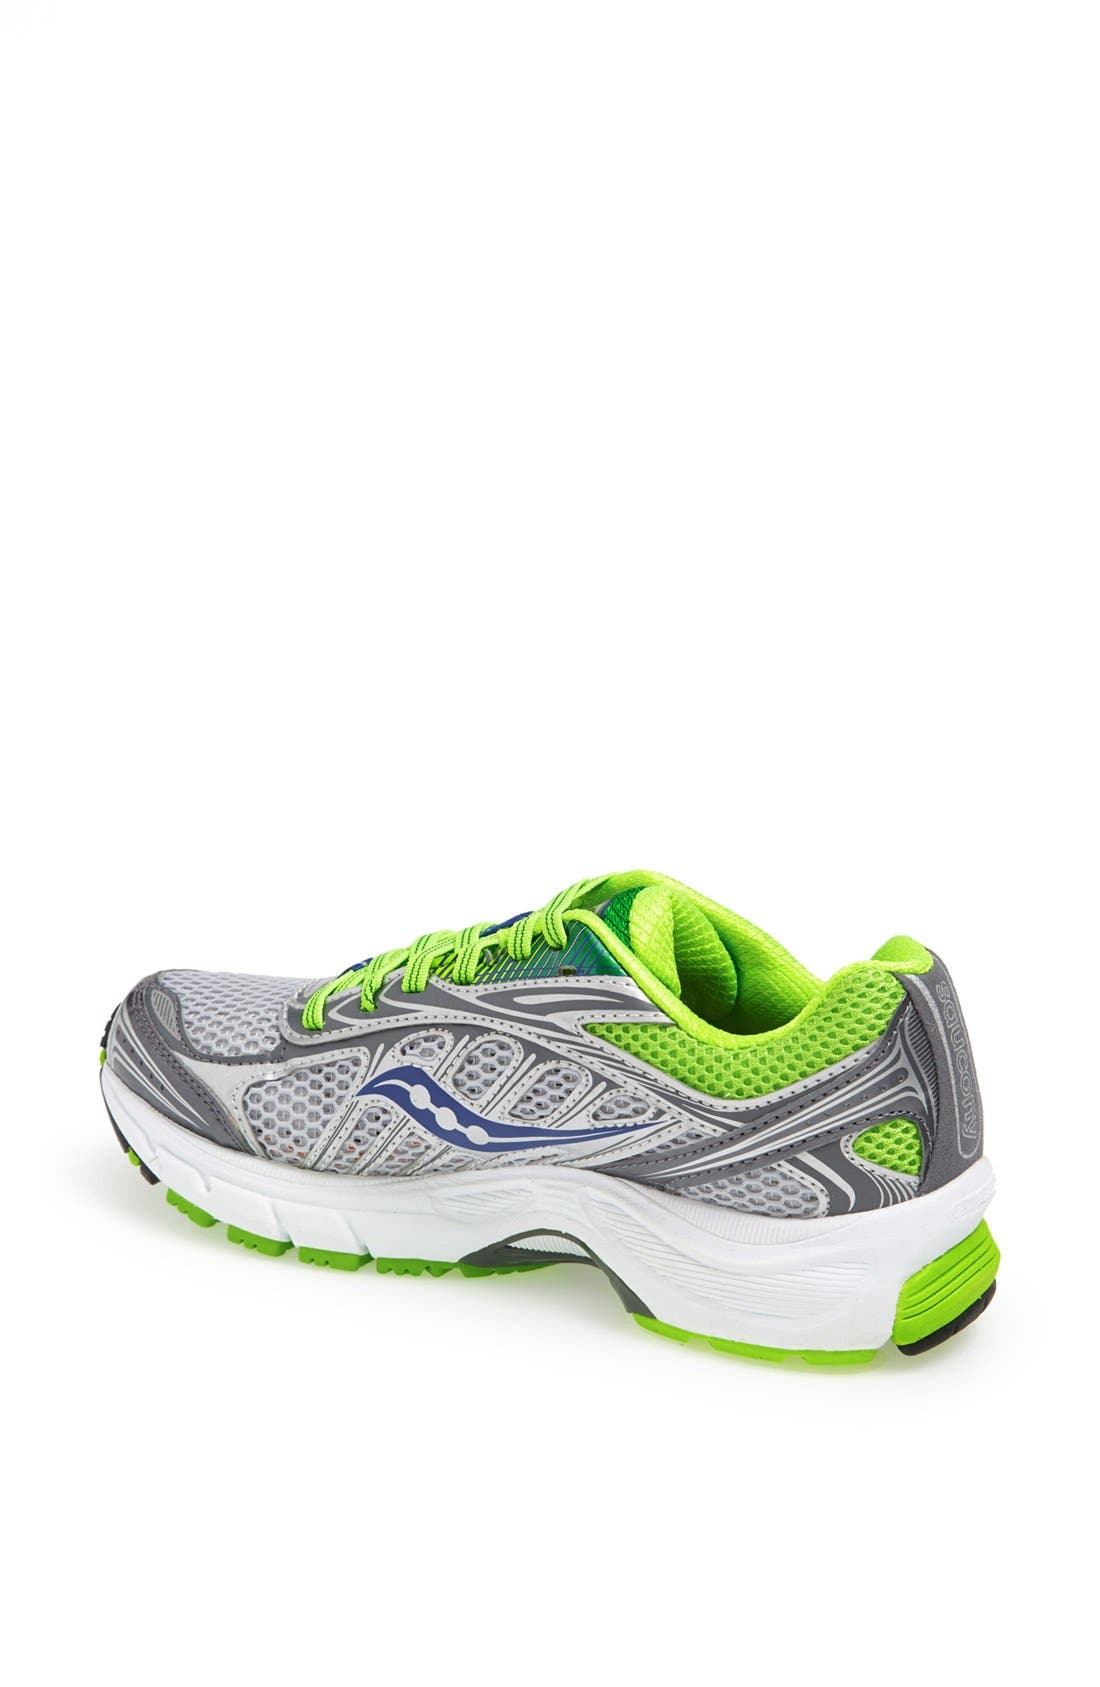 Alternate Image 2  - Saucony 'Ride 6' Running Shoe (Women)